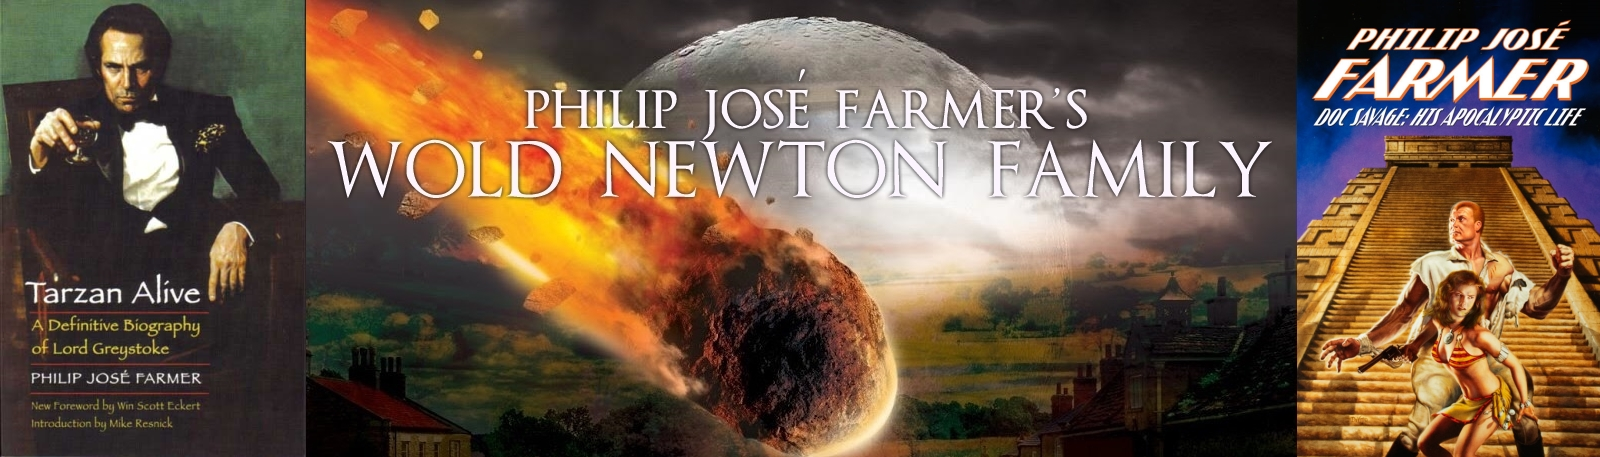 Philip José Farmer's Wold Newton Family